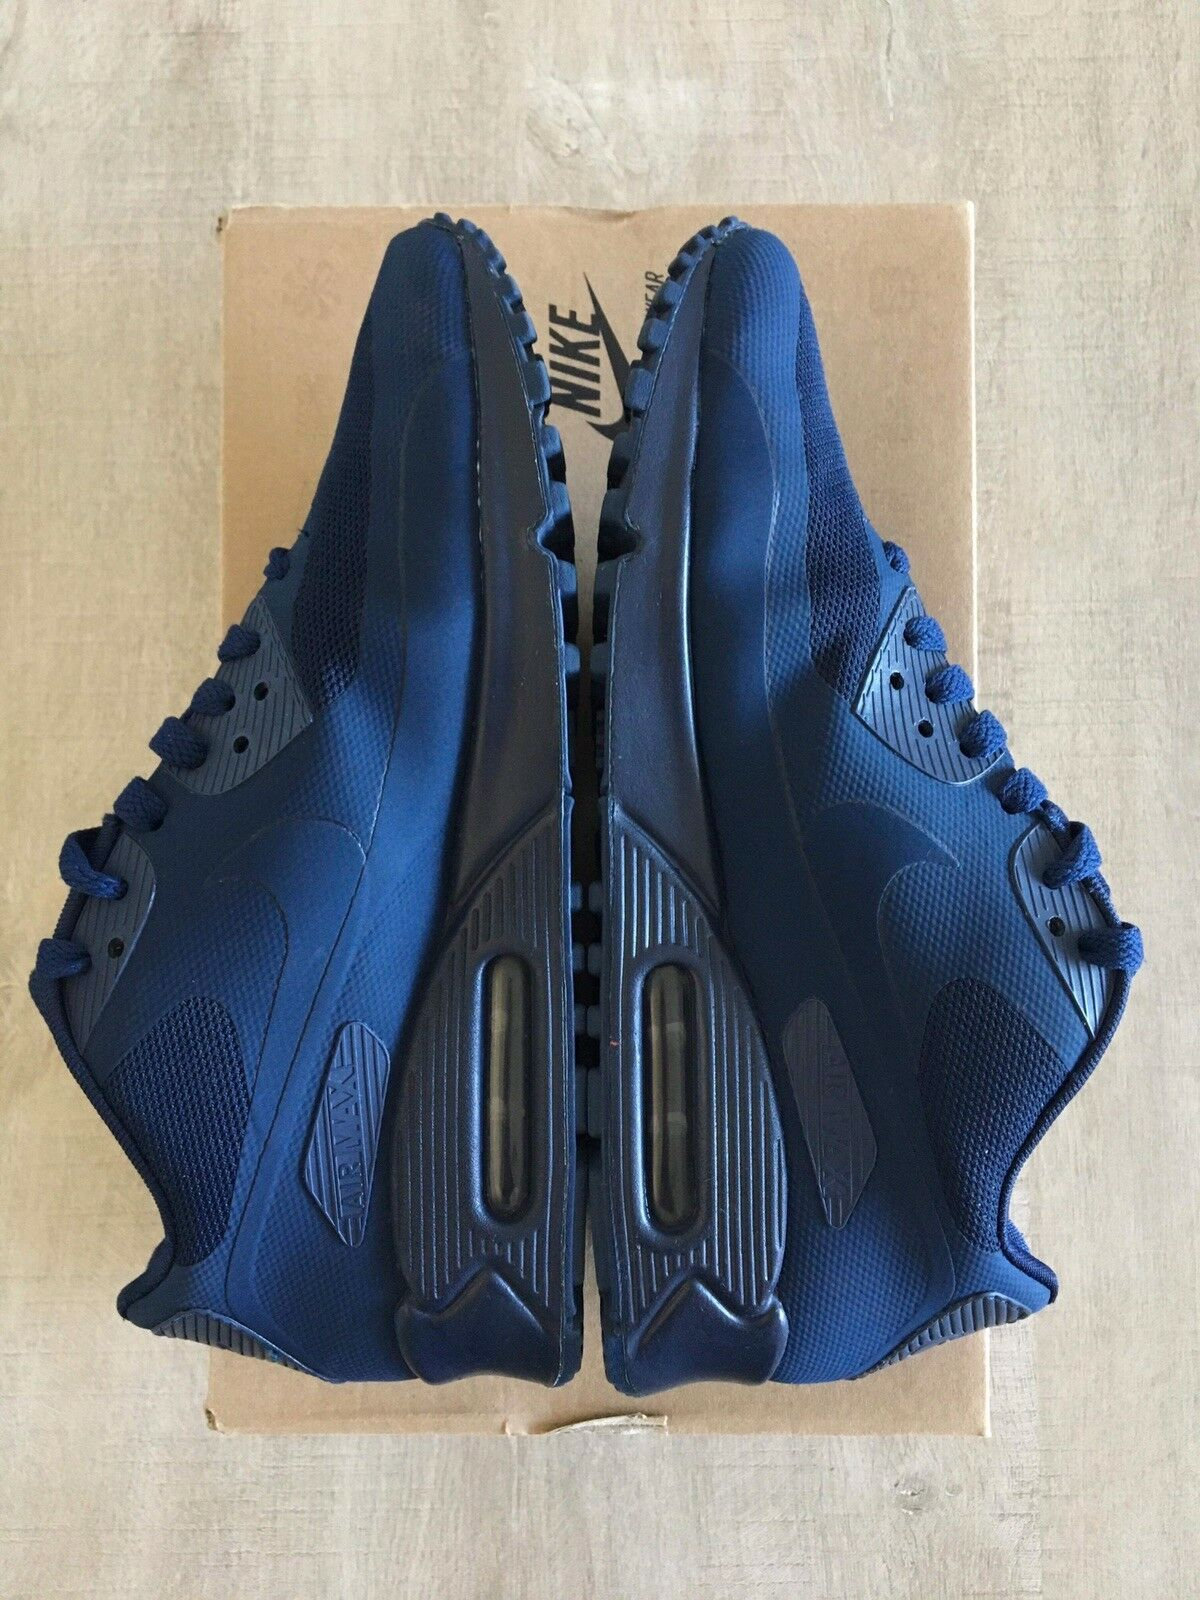 Nike Air Max 90 Hyperfuse Independence Day USA QS QS QS Midnight Navy - 7US/40EUR/6UK 3aee28